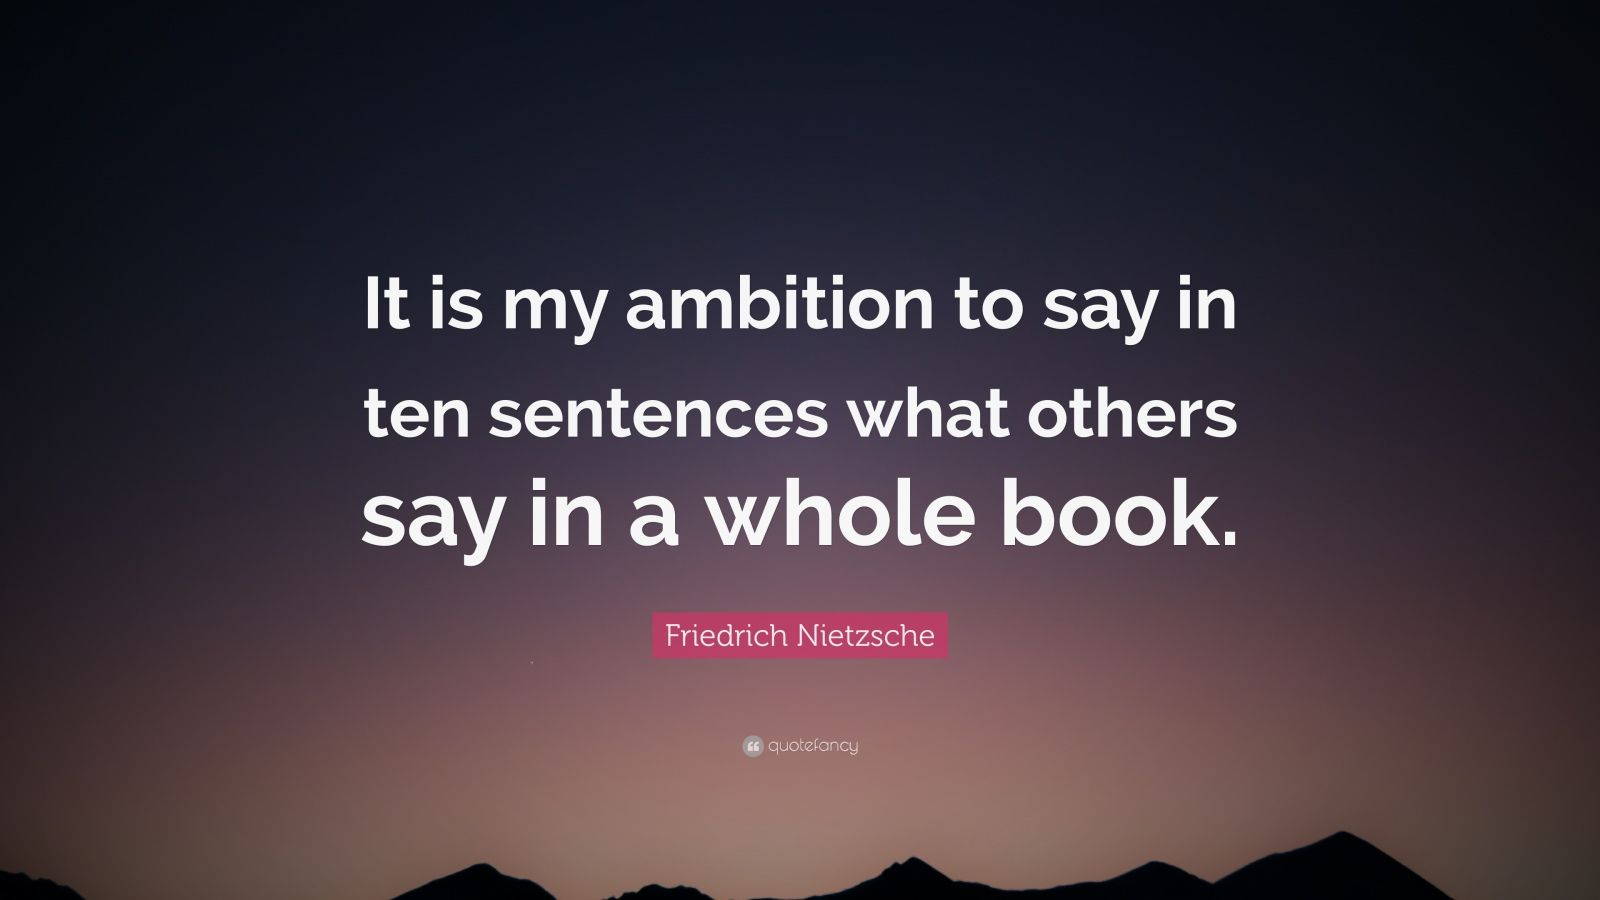 Sentence for ambition | Use ambition in a sentence